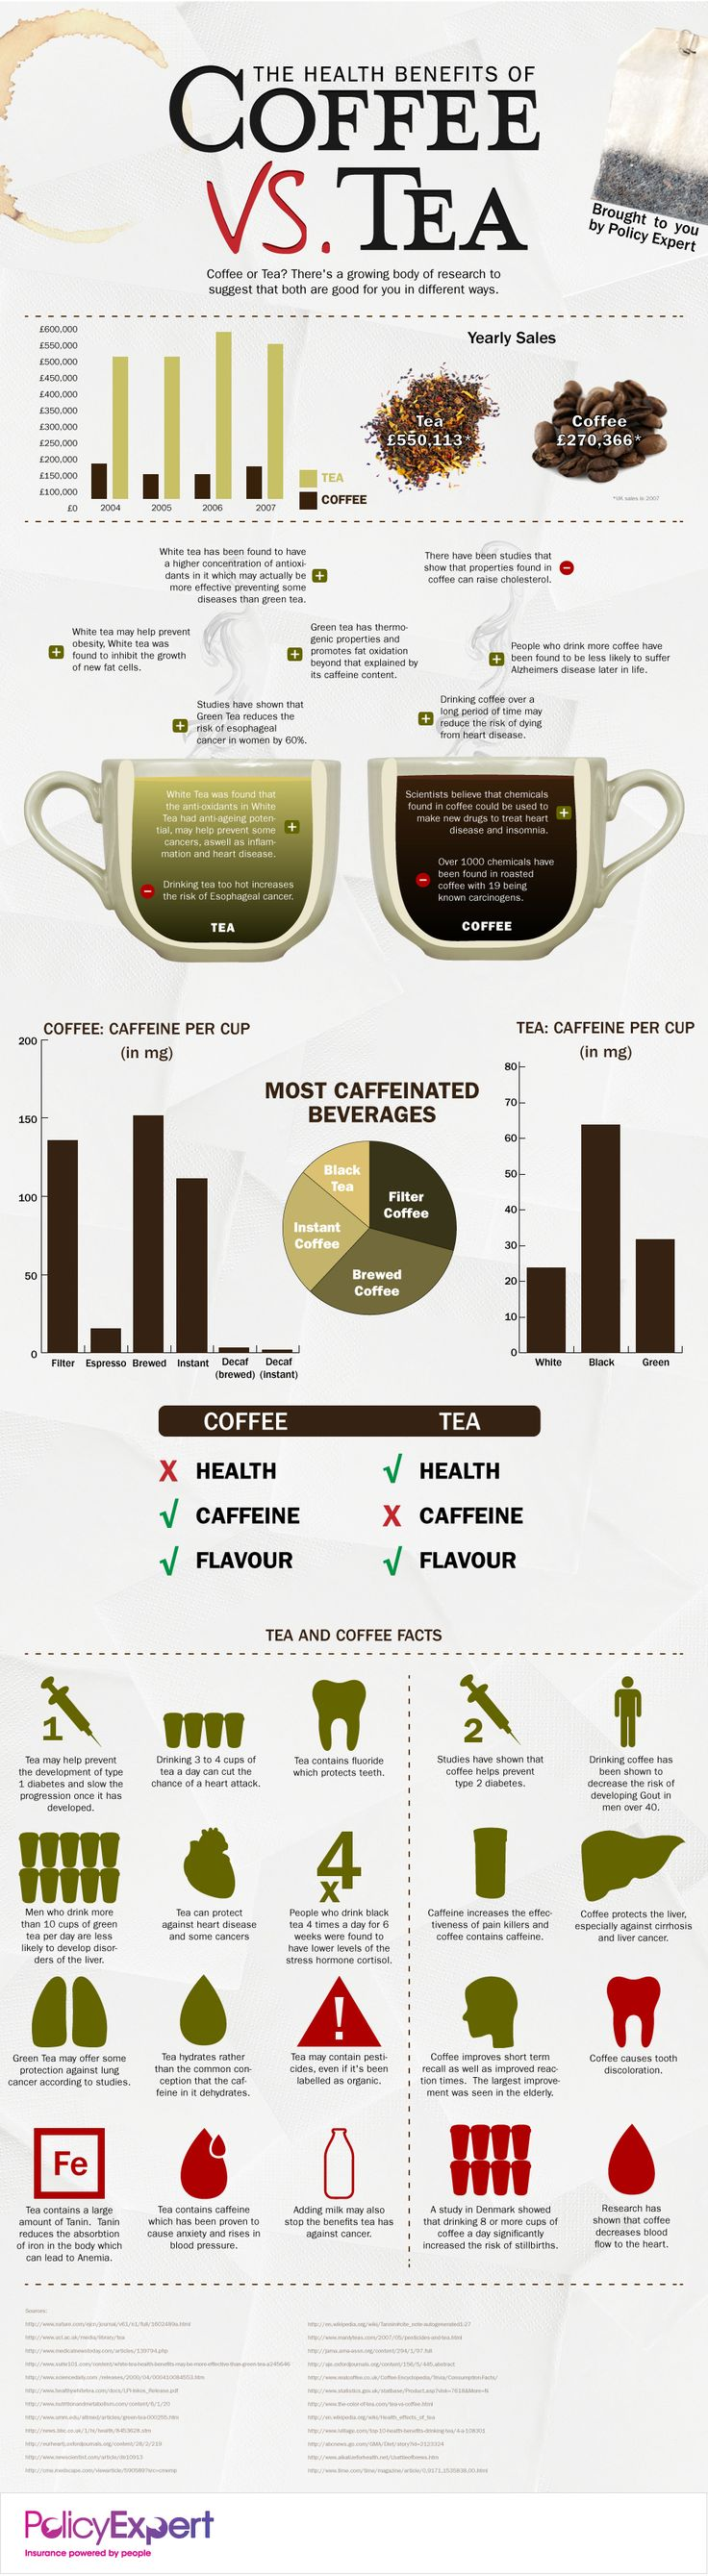 The experts often cite health benefits of both coffee and tea so how is one to know which is more beneficial or healthy?  This infographic compares a